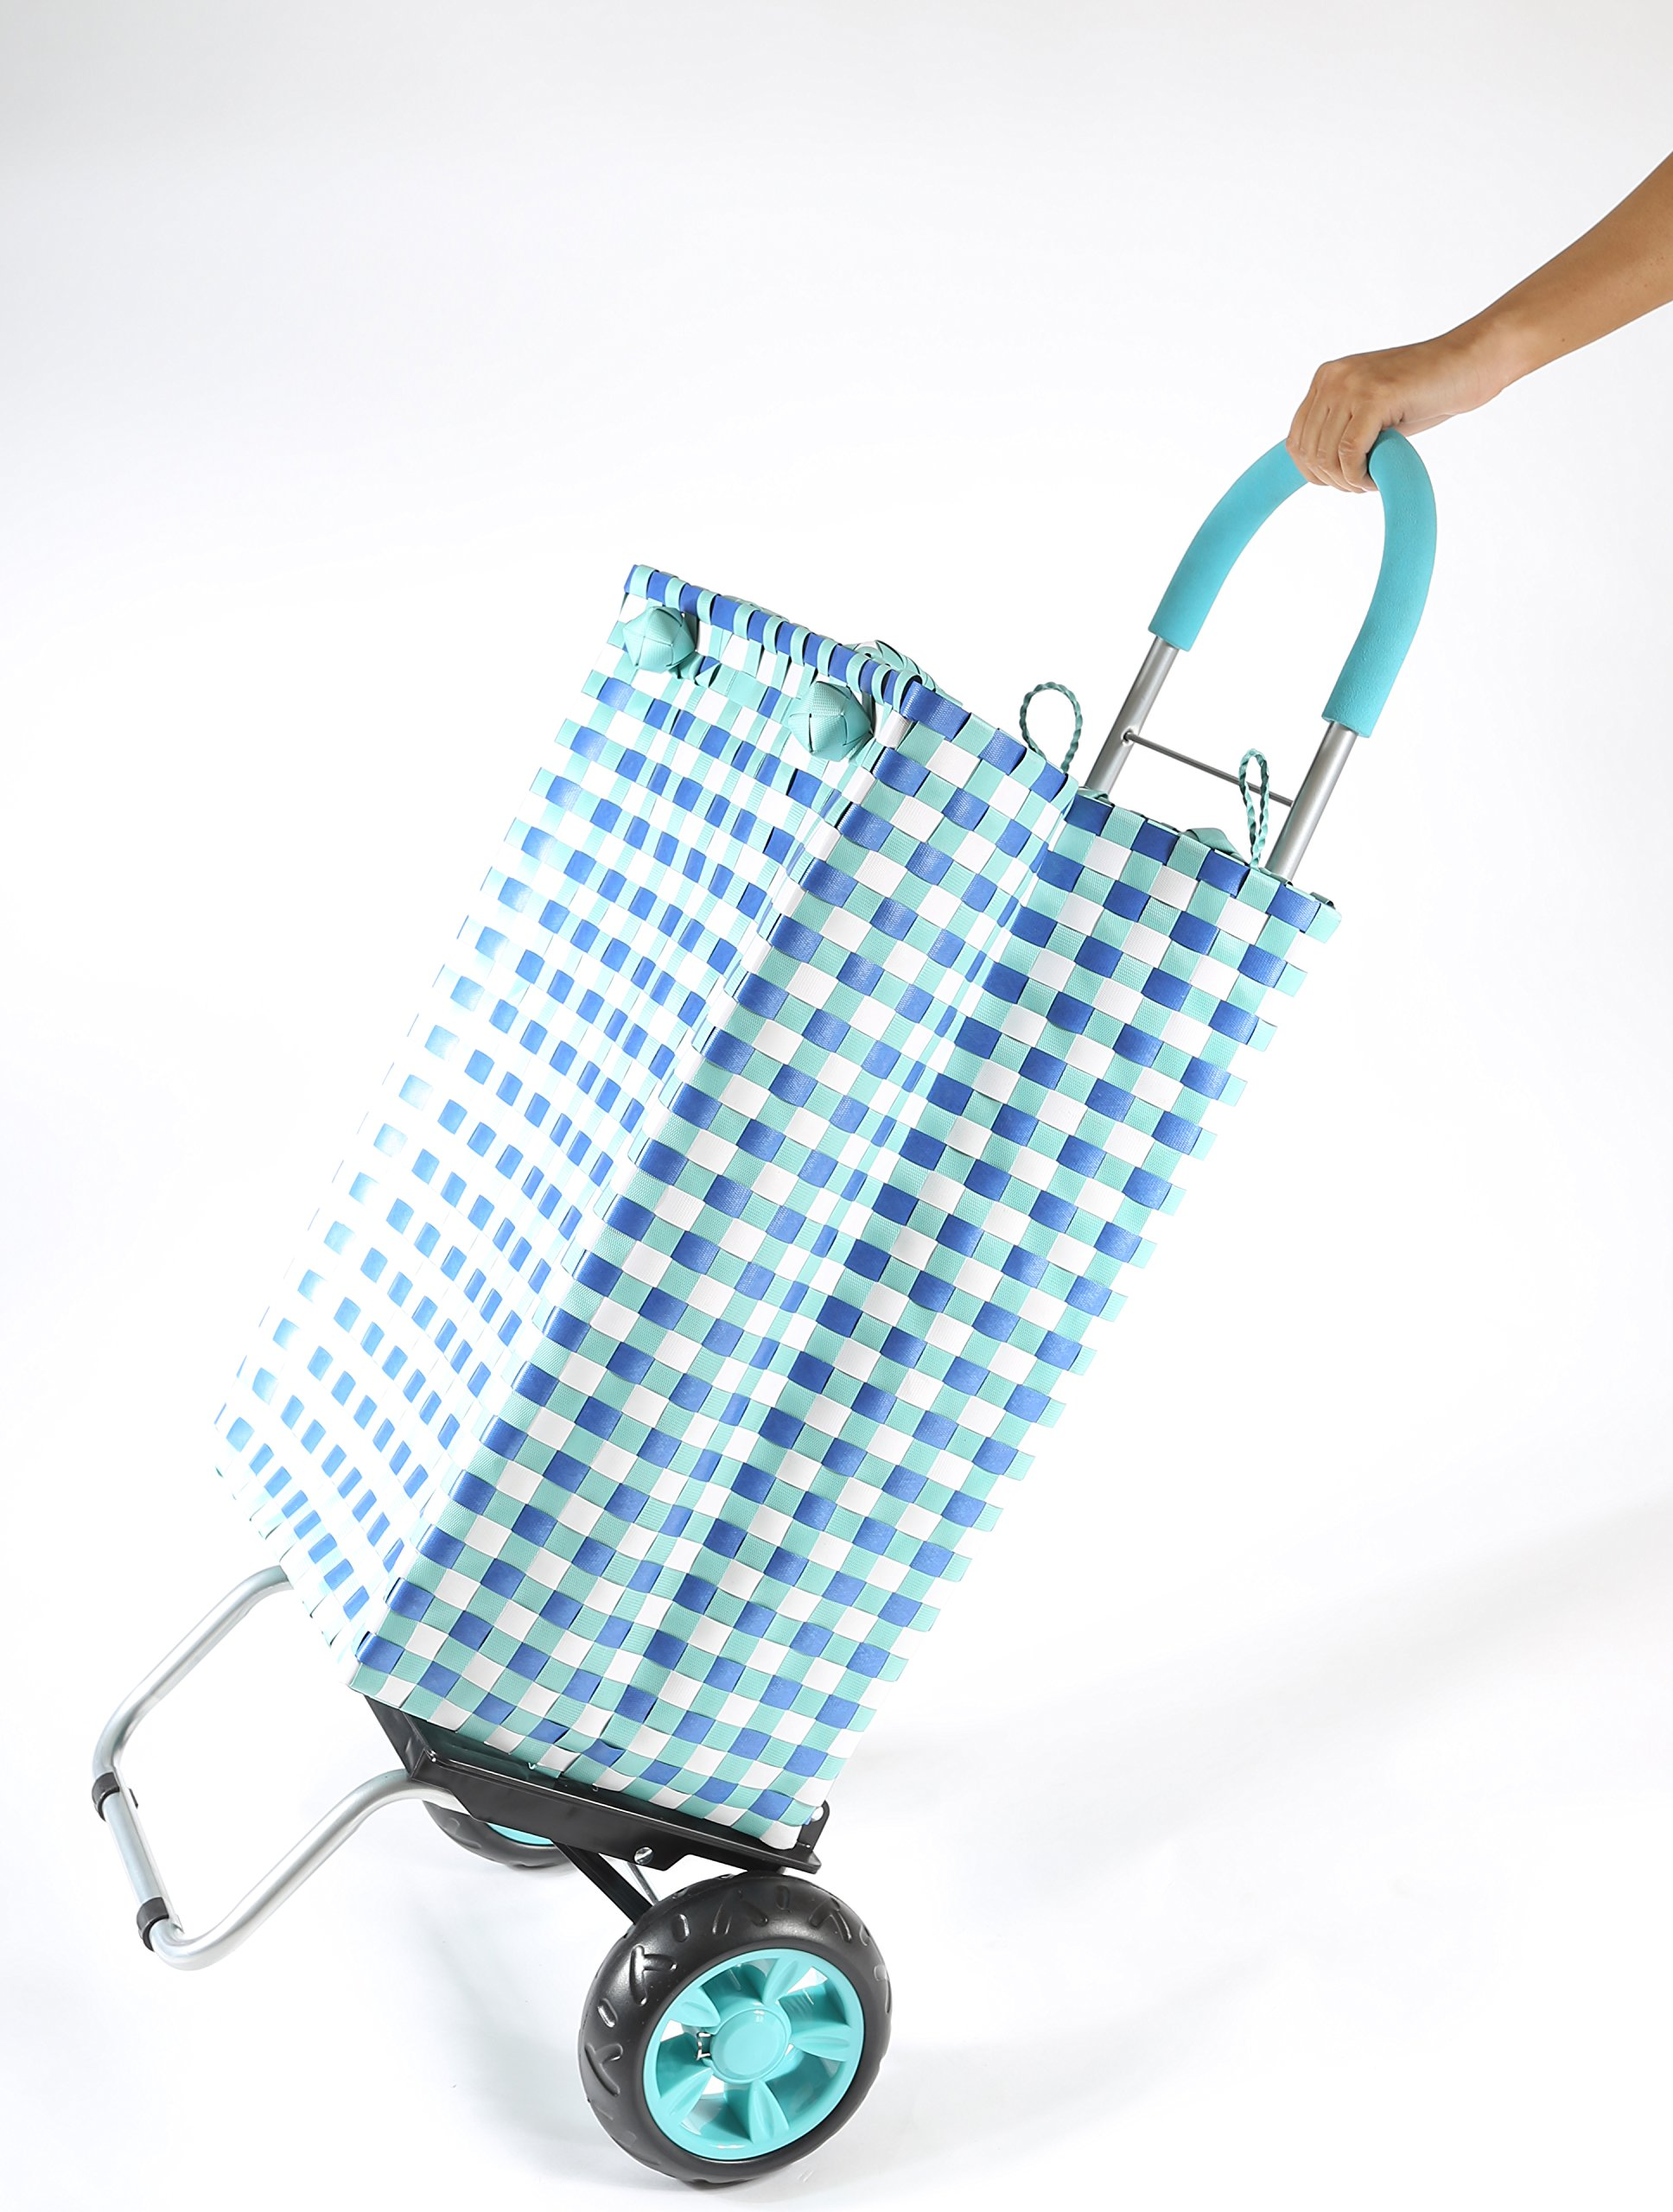 dbest products Trolley Dolly Basket Weave Tote, Blue Shopping Grocery Foldable Cart Picnic Beach by dbest products (Image #5)